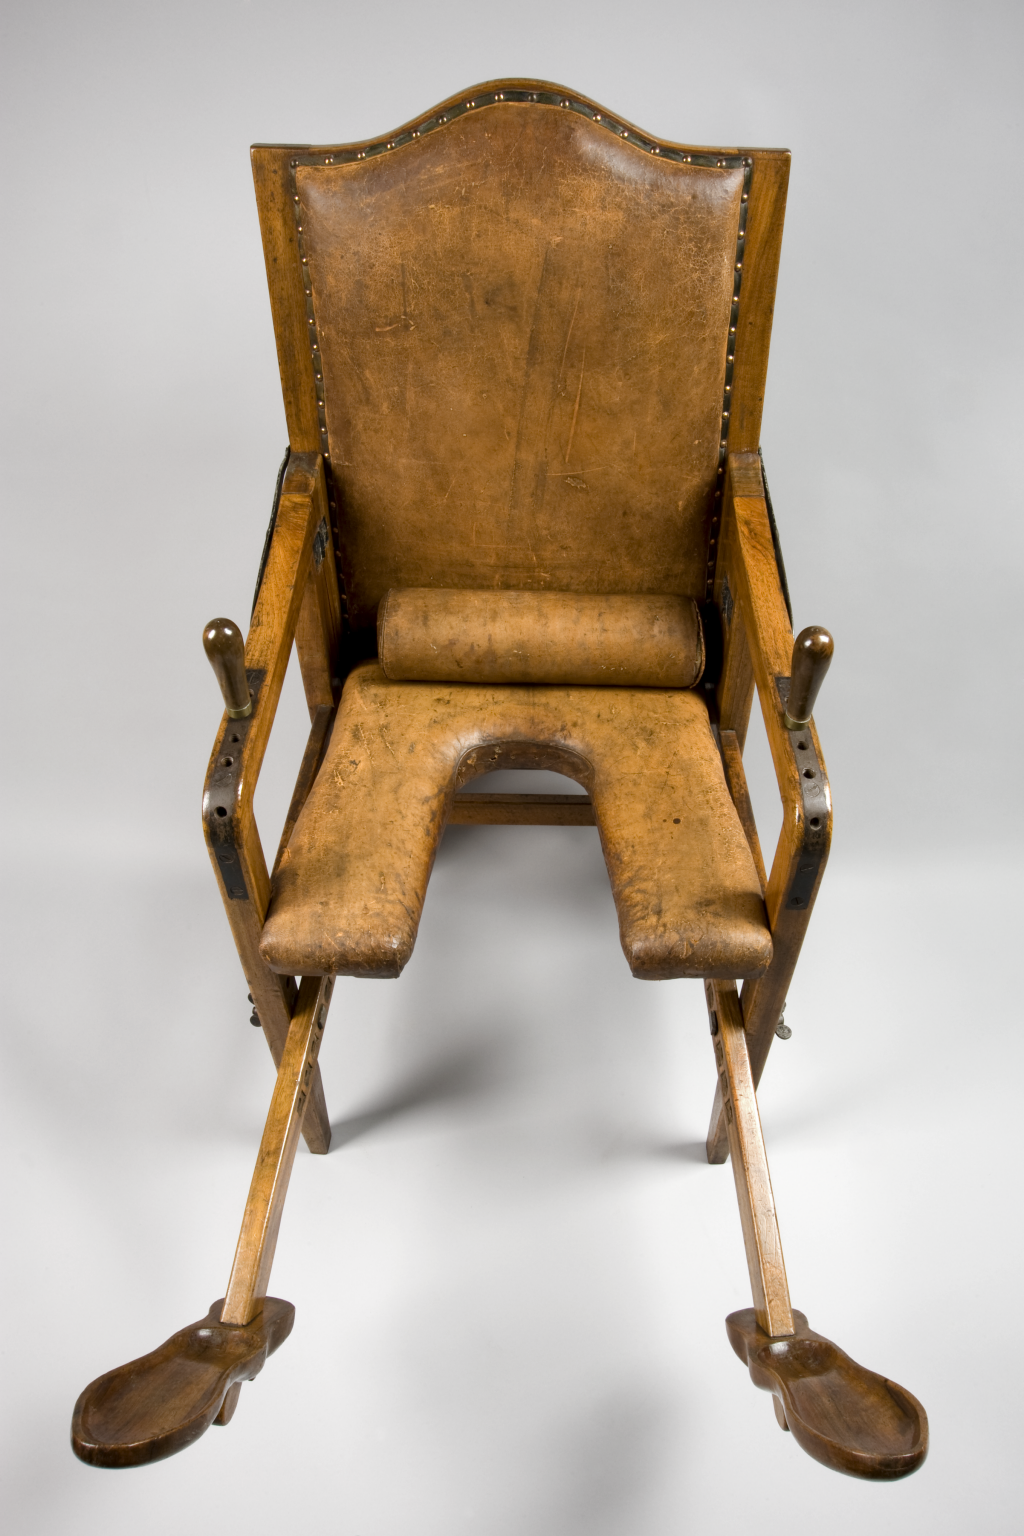 Antique birthing chair - Antique Birthing Chair As Seen In Call The Midwife Tv Series Thank God For Modern Medicine